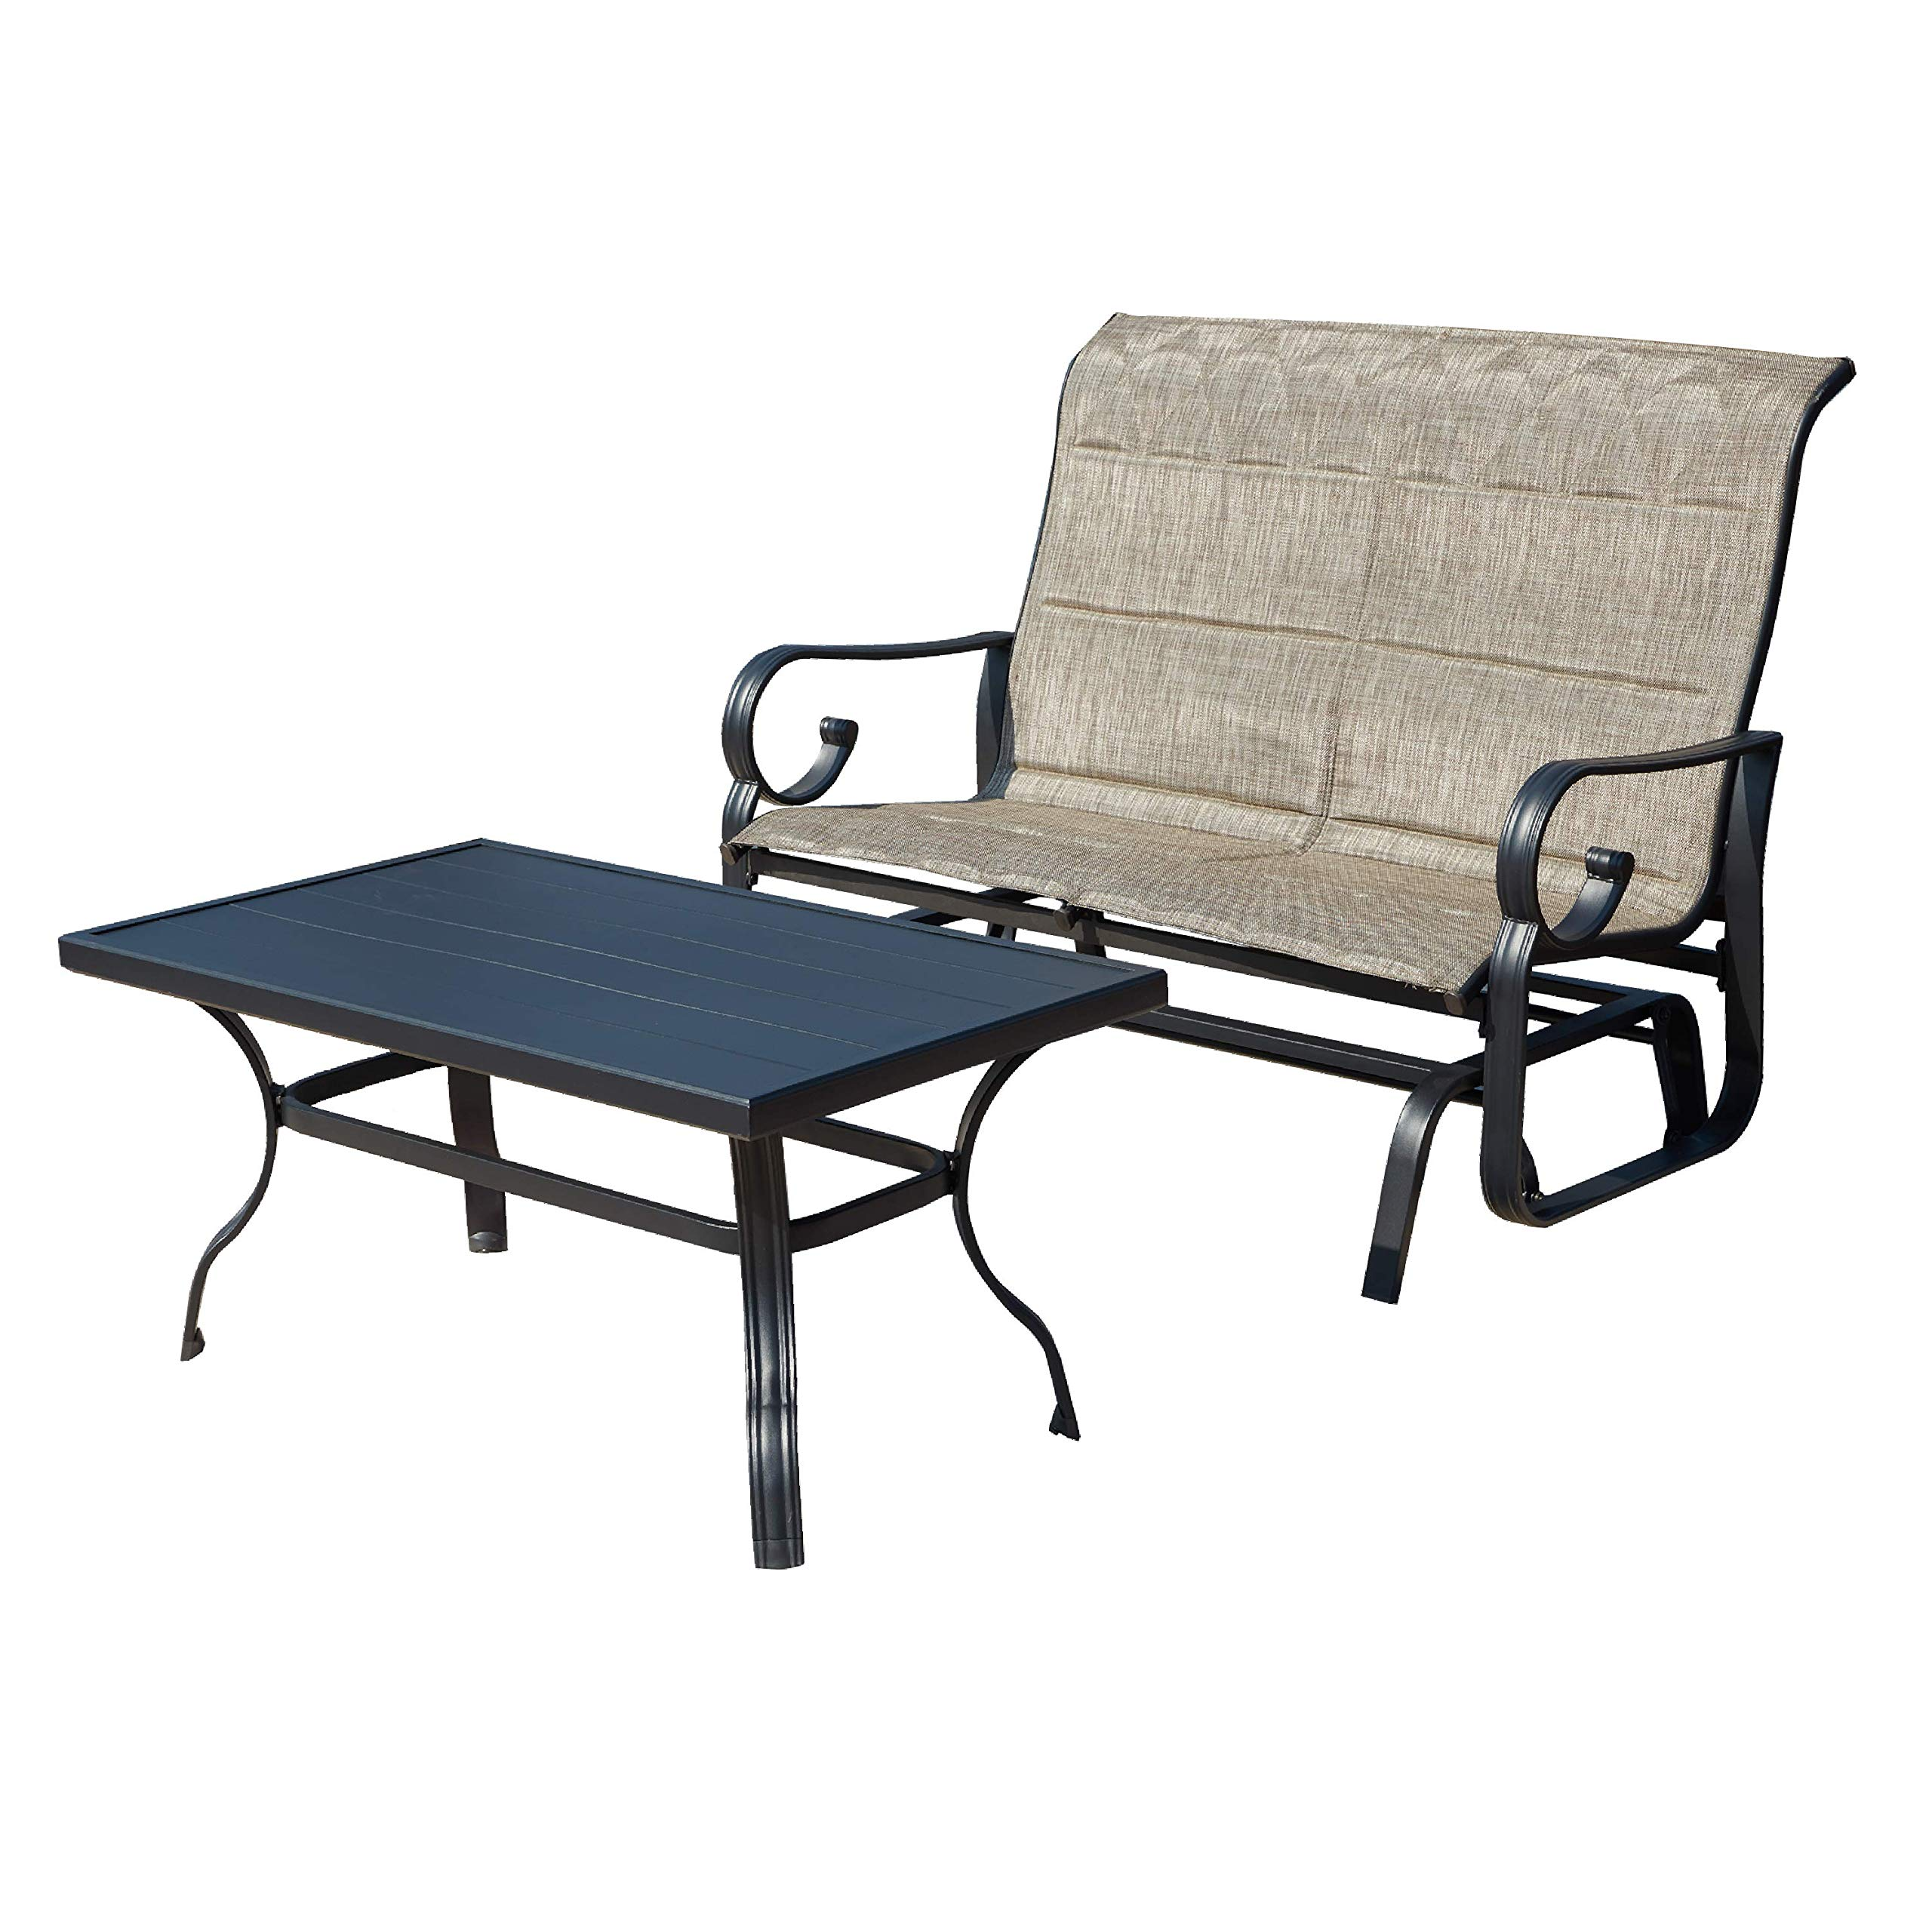 LOKATSE HOME Outdoor Patio Glider Chair Set Rocking Loveseat Swing Beach Furniture Seating with Table,Grey